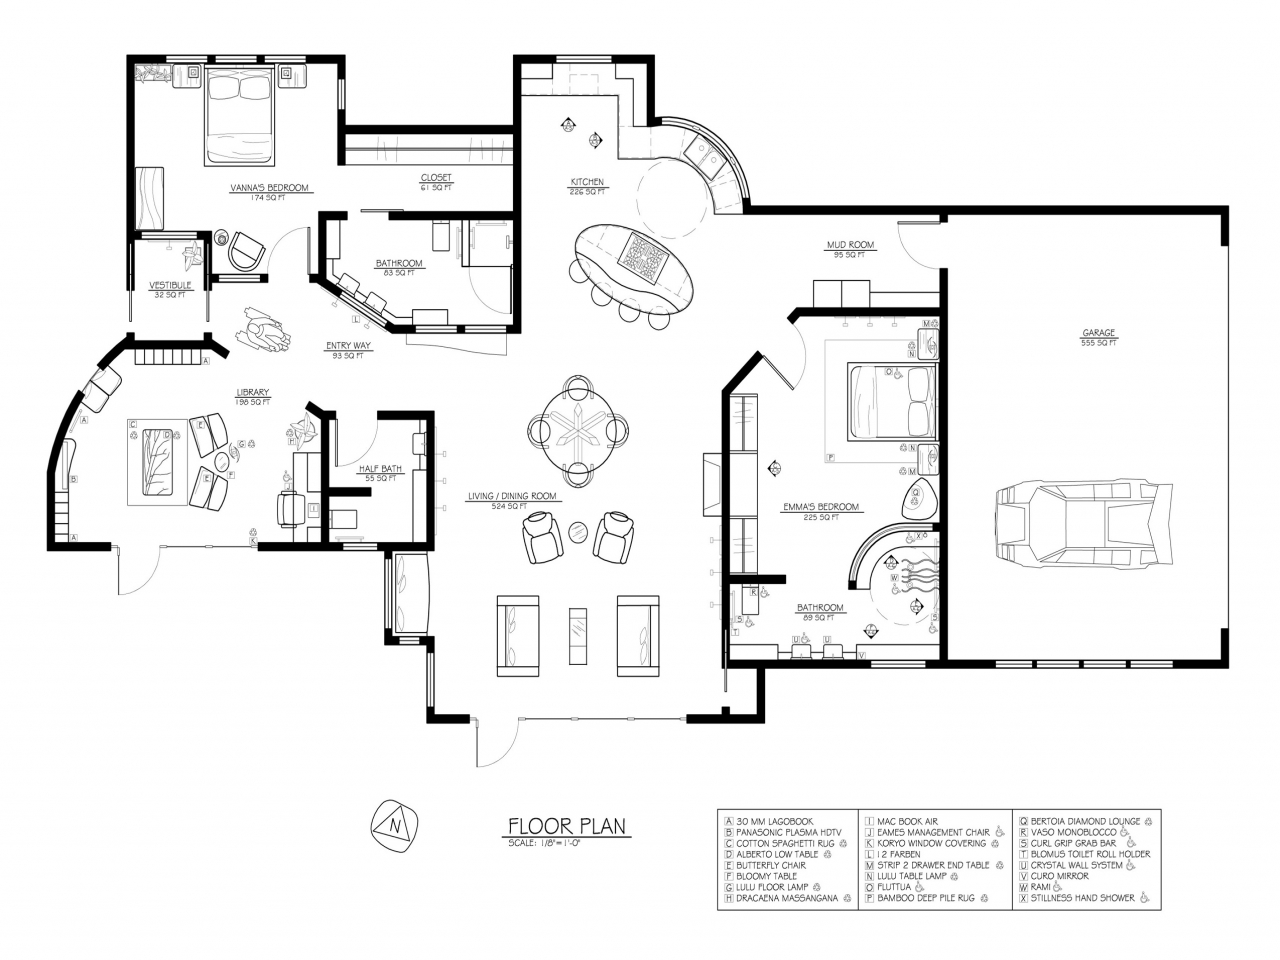 Passive Solar House Floor Plan Passive Solar House Diagram